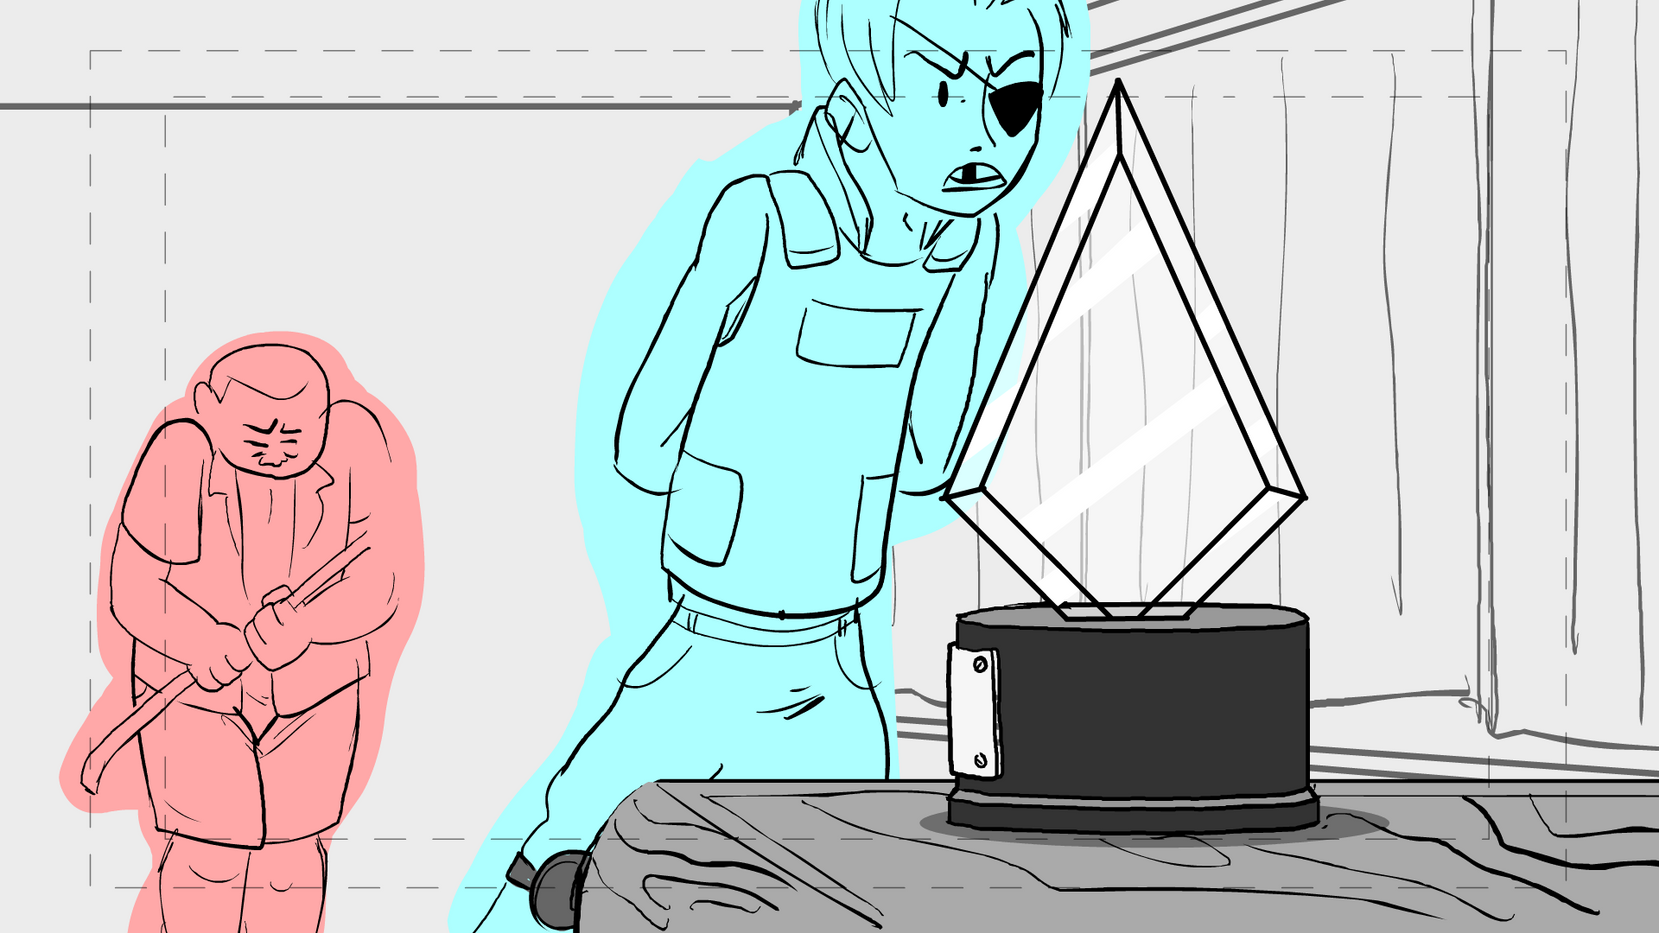 Storyboards_06_0522.png